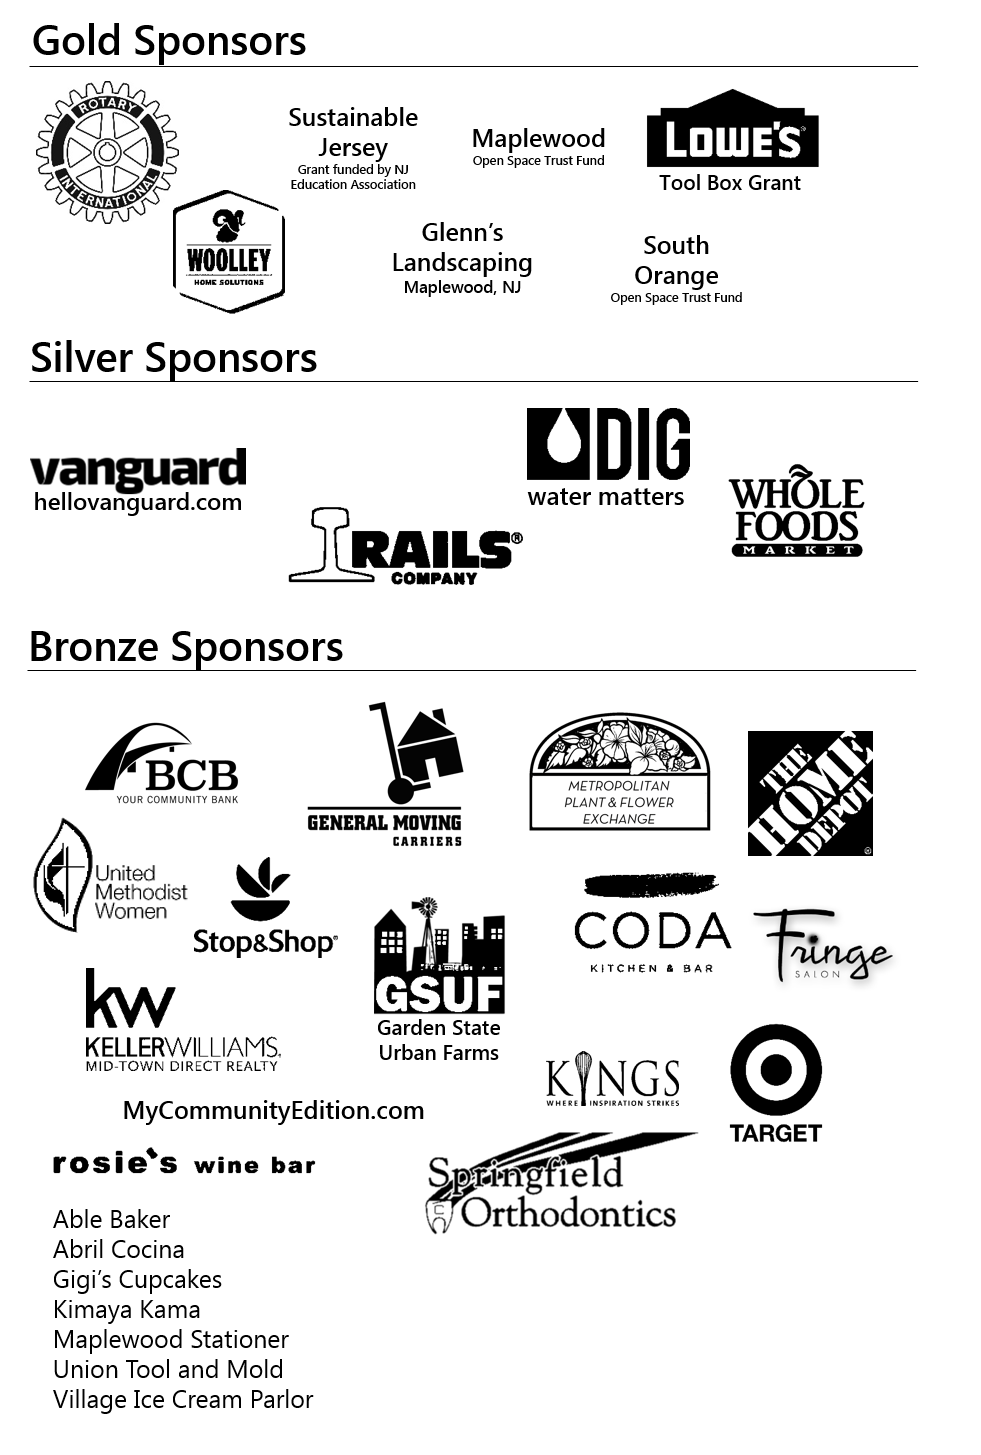 Outdoor Learning Center sponsors